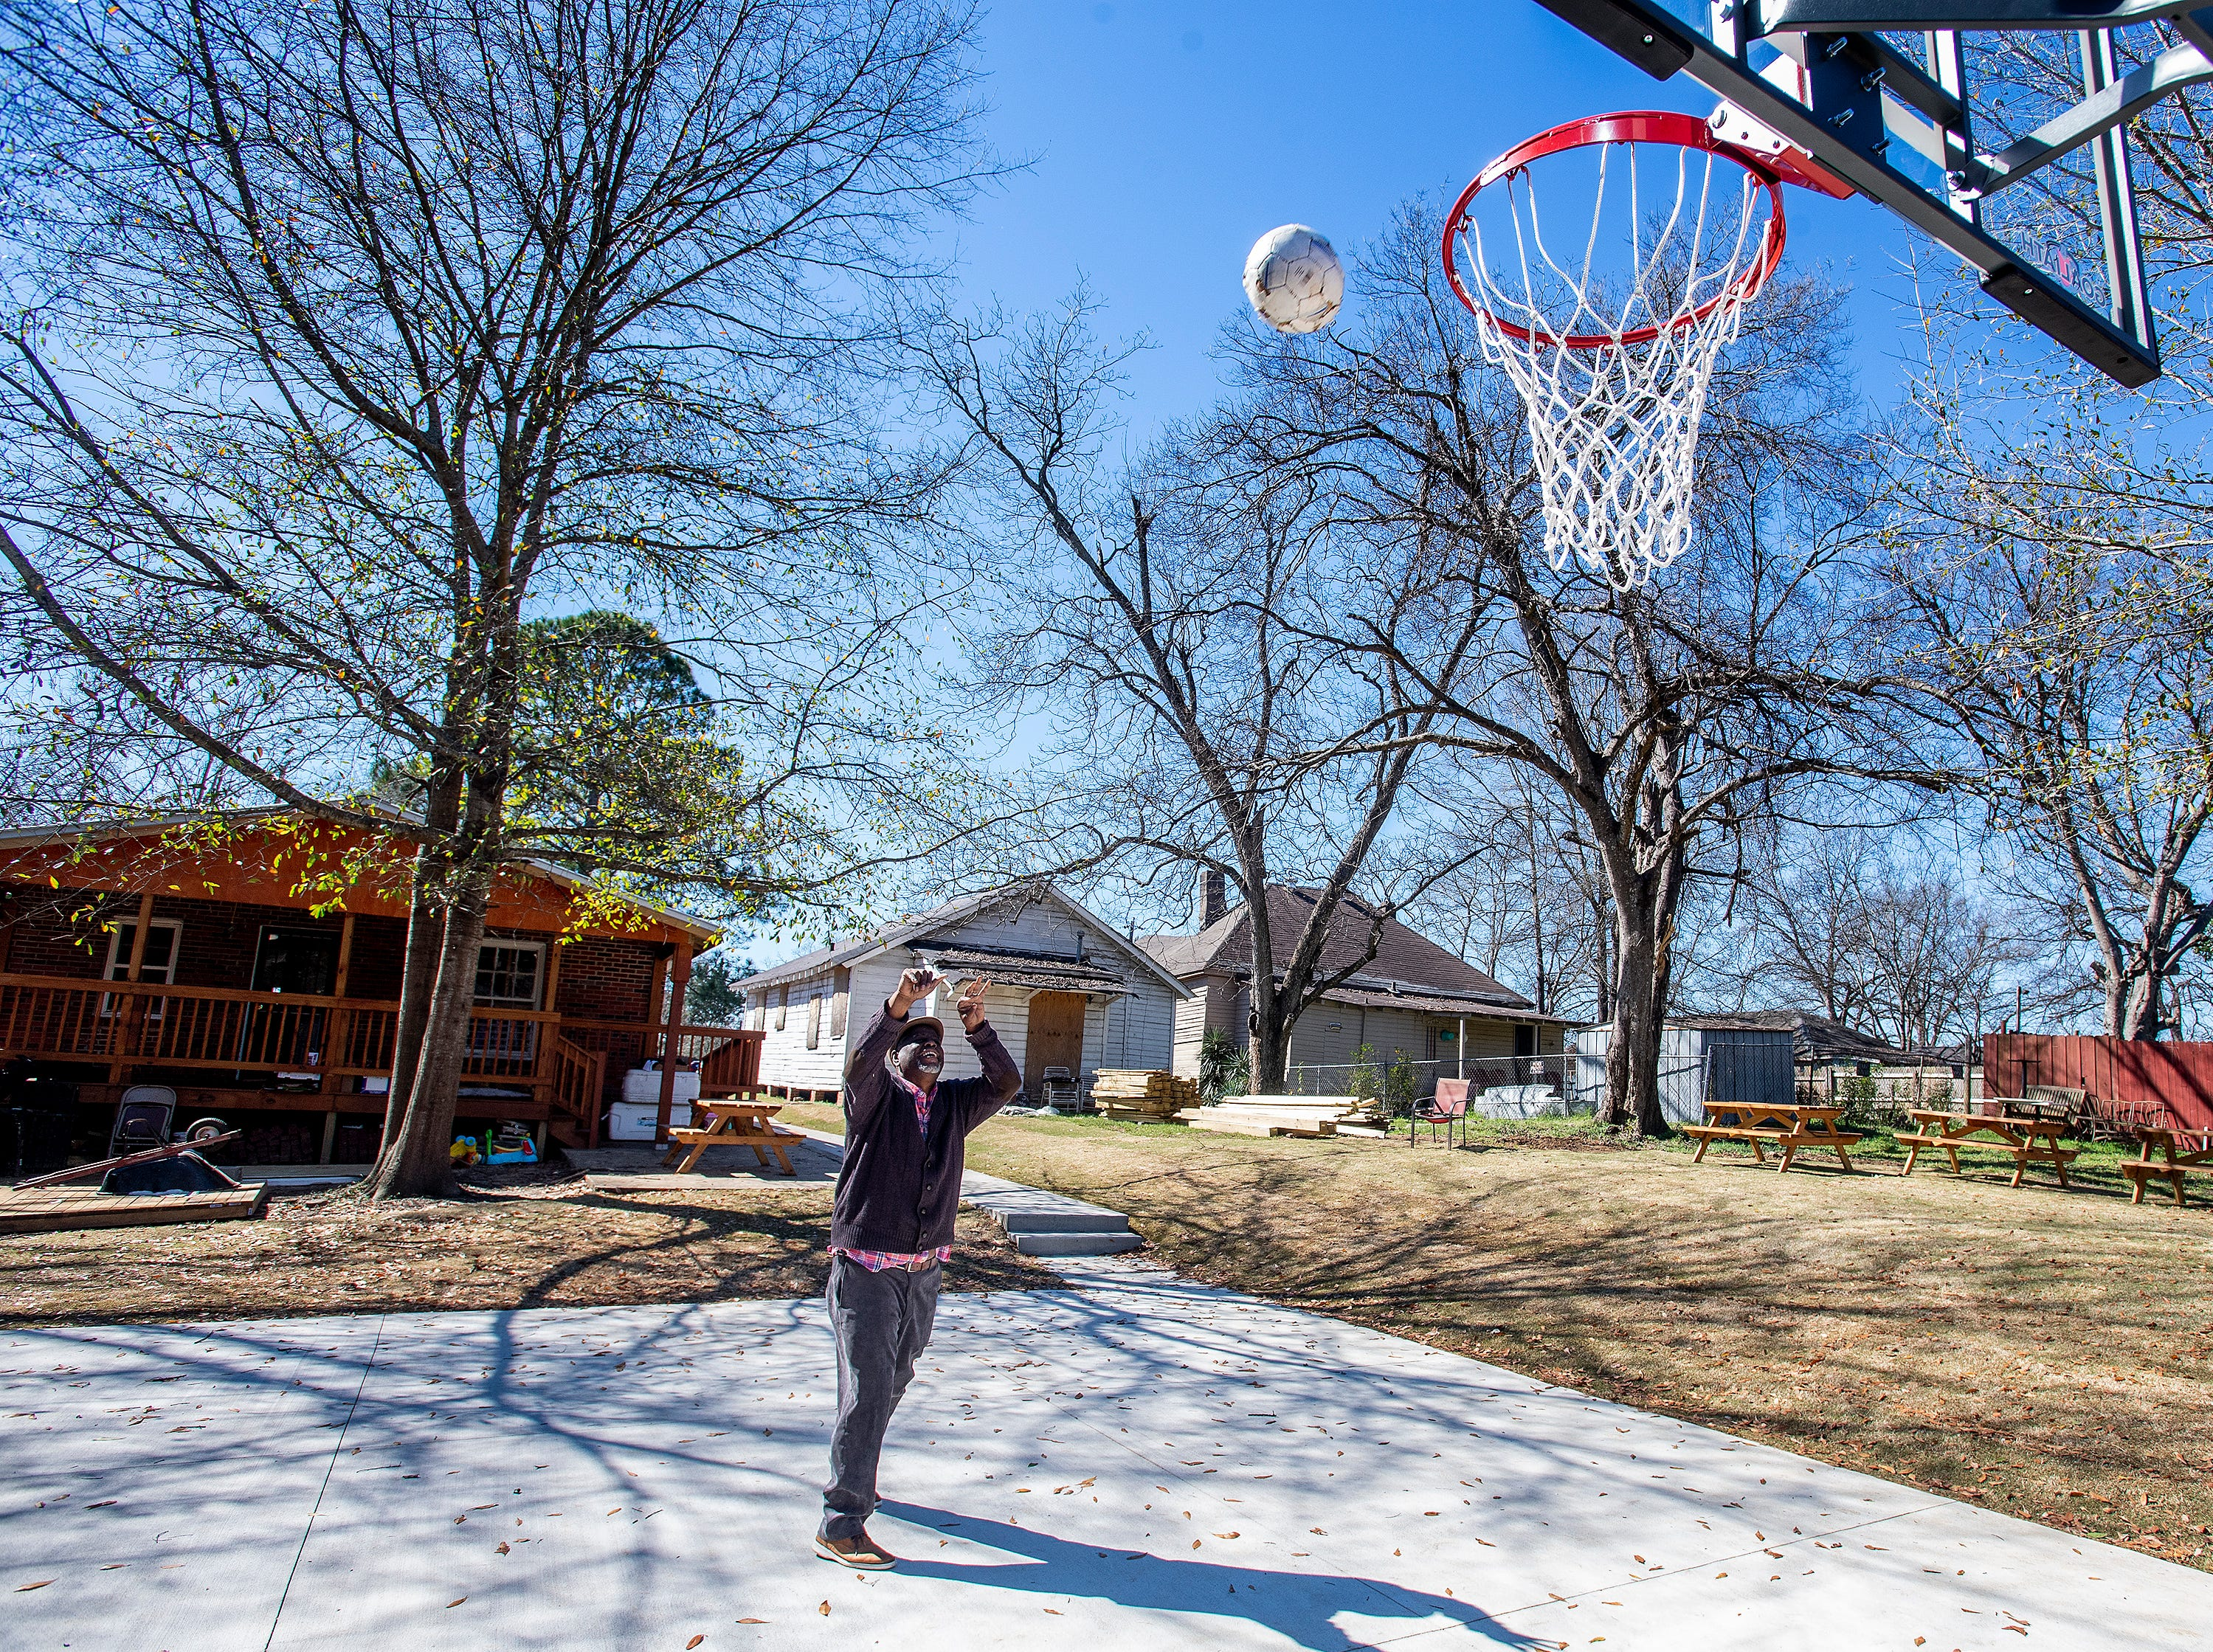 Ken Austin, executive director of the Mercy House and pastor at New Walk of Life Church, shows off his new basketball court behind Mercy House in Montgomery, Ala., on Wednesday February 13, 2019.